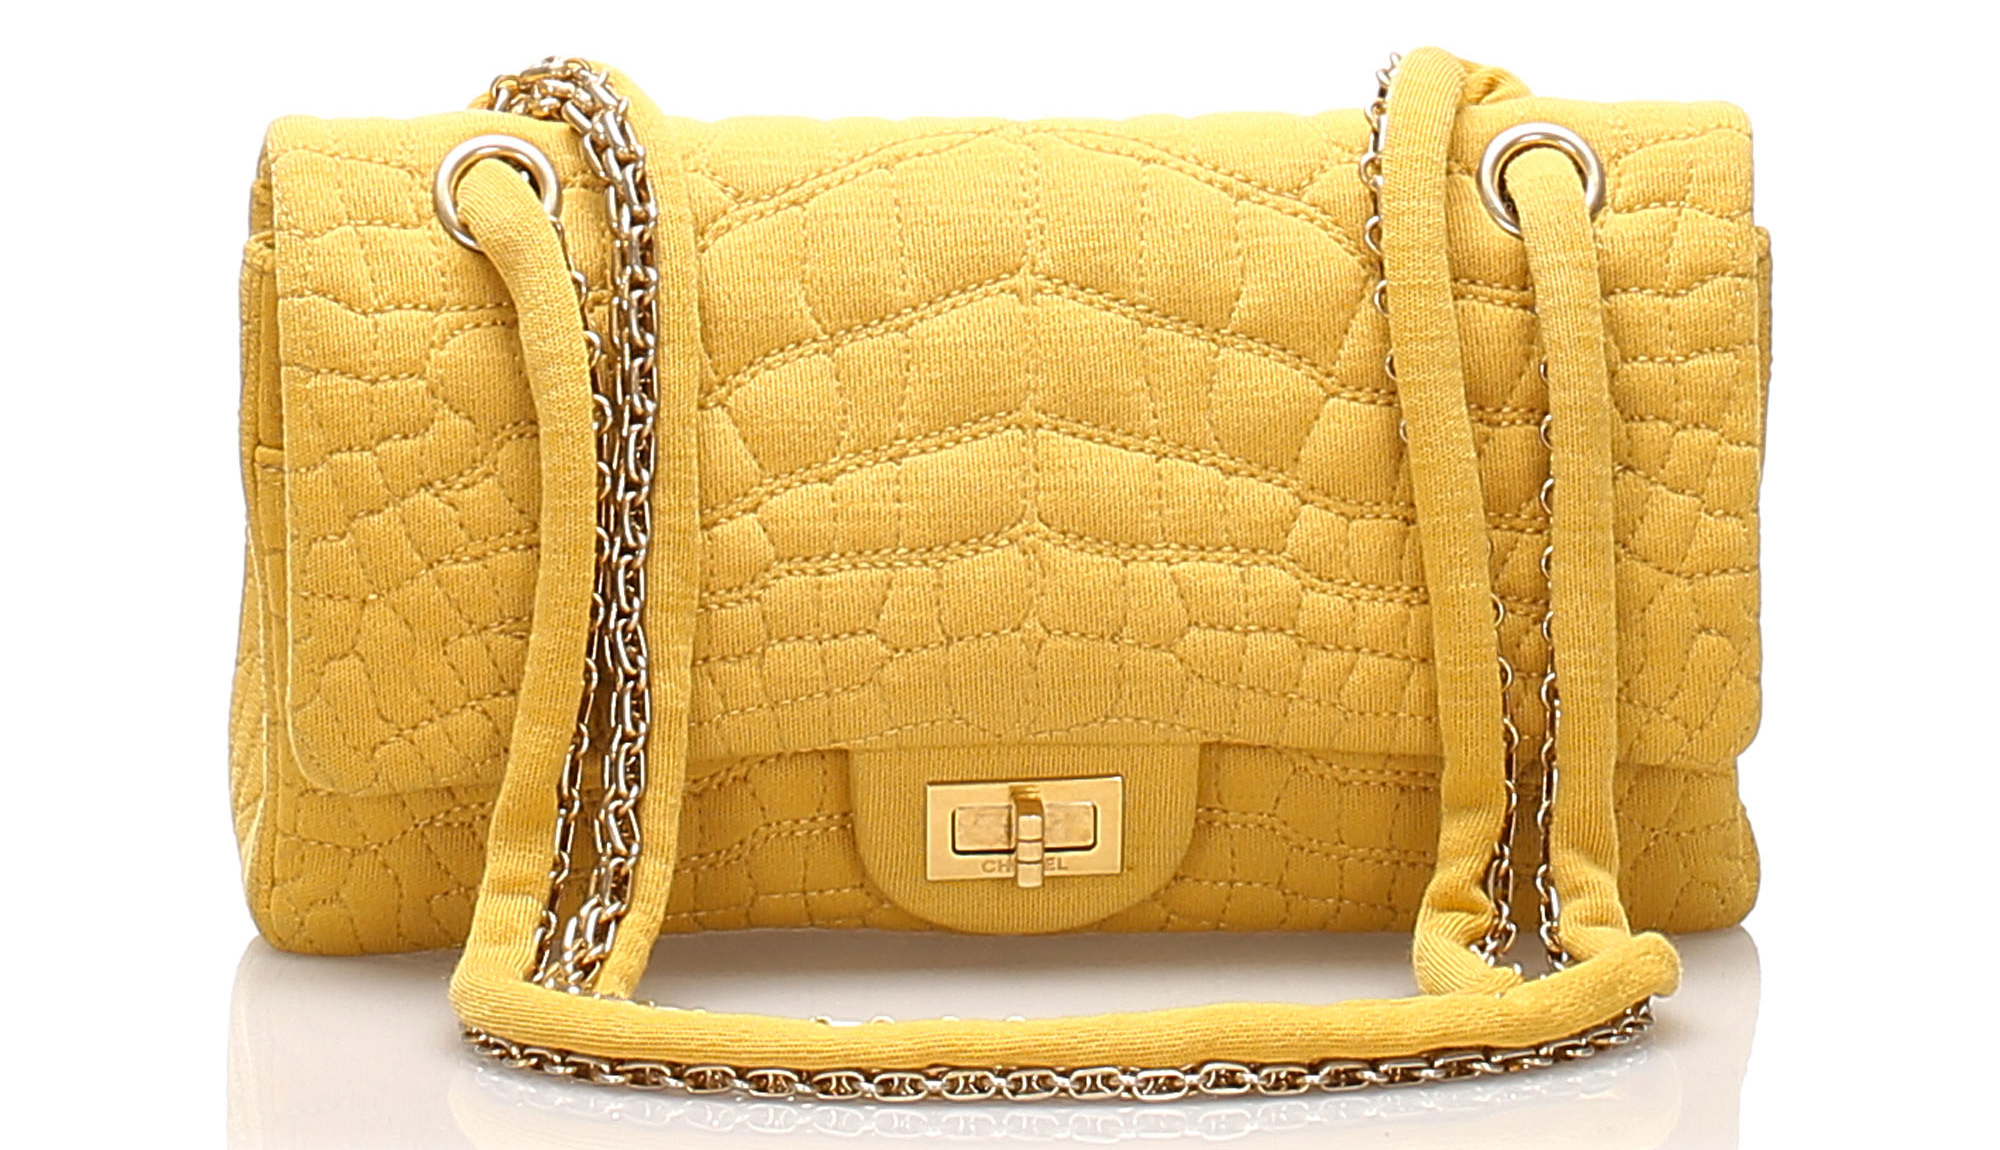 Chanel Reissue Croc Stitch Cotton Double Flap Bag